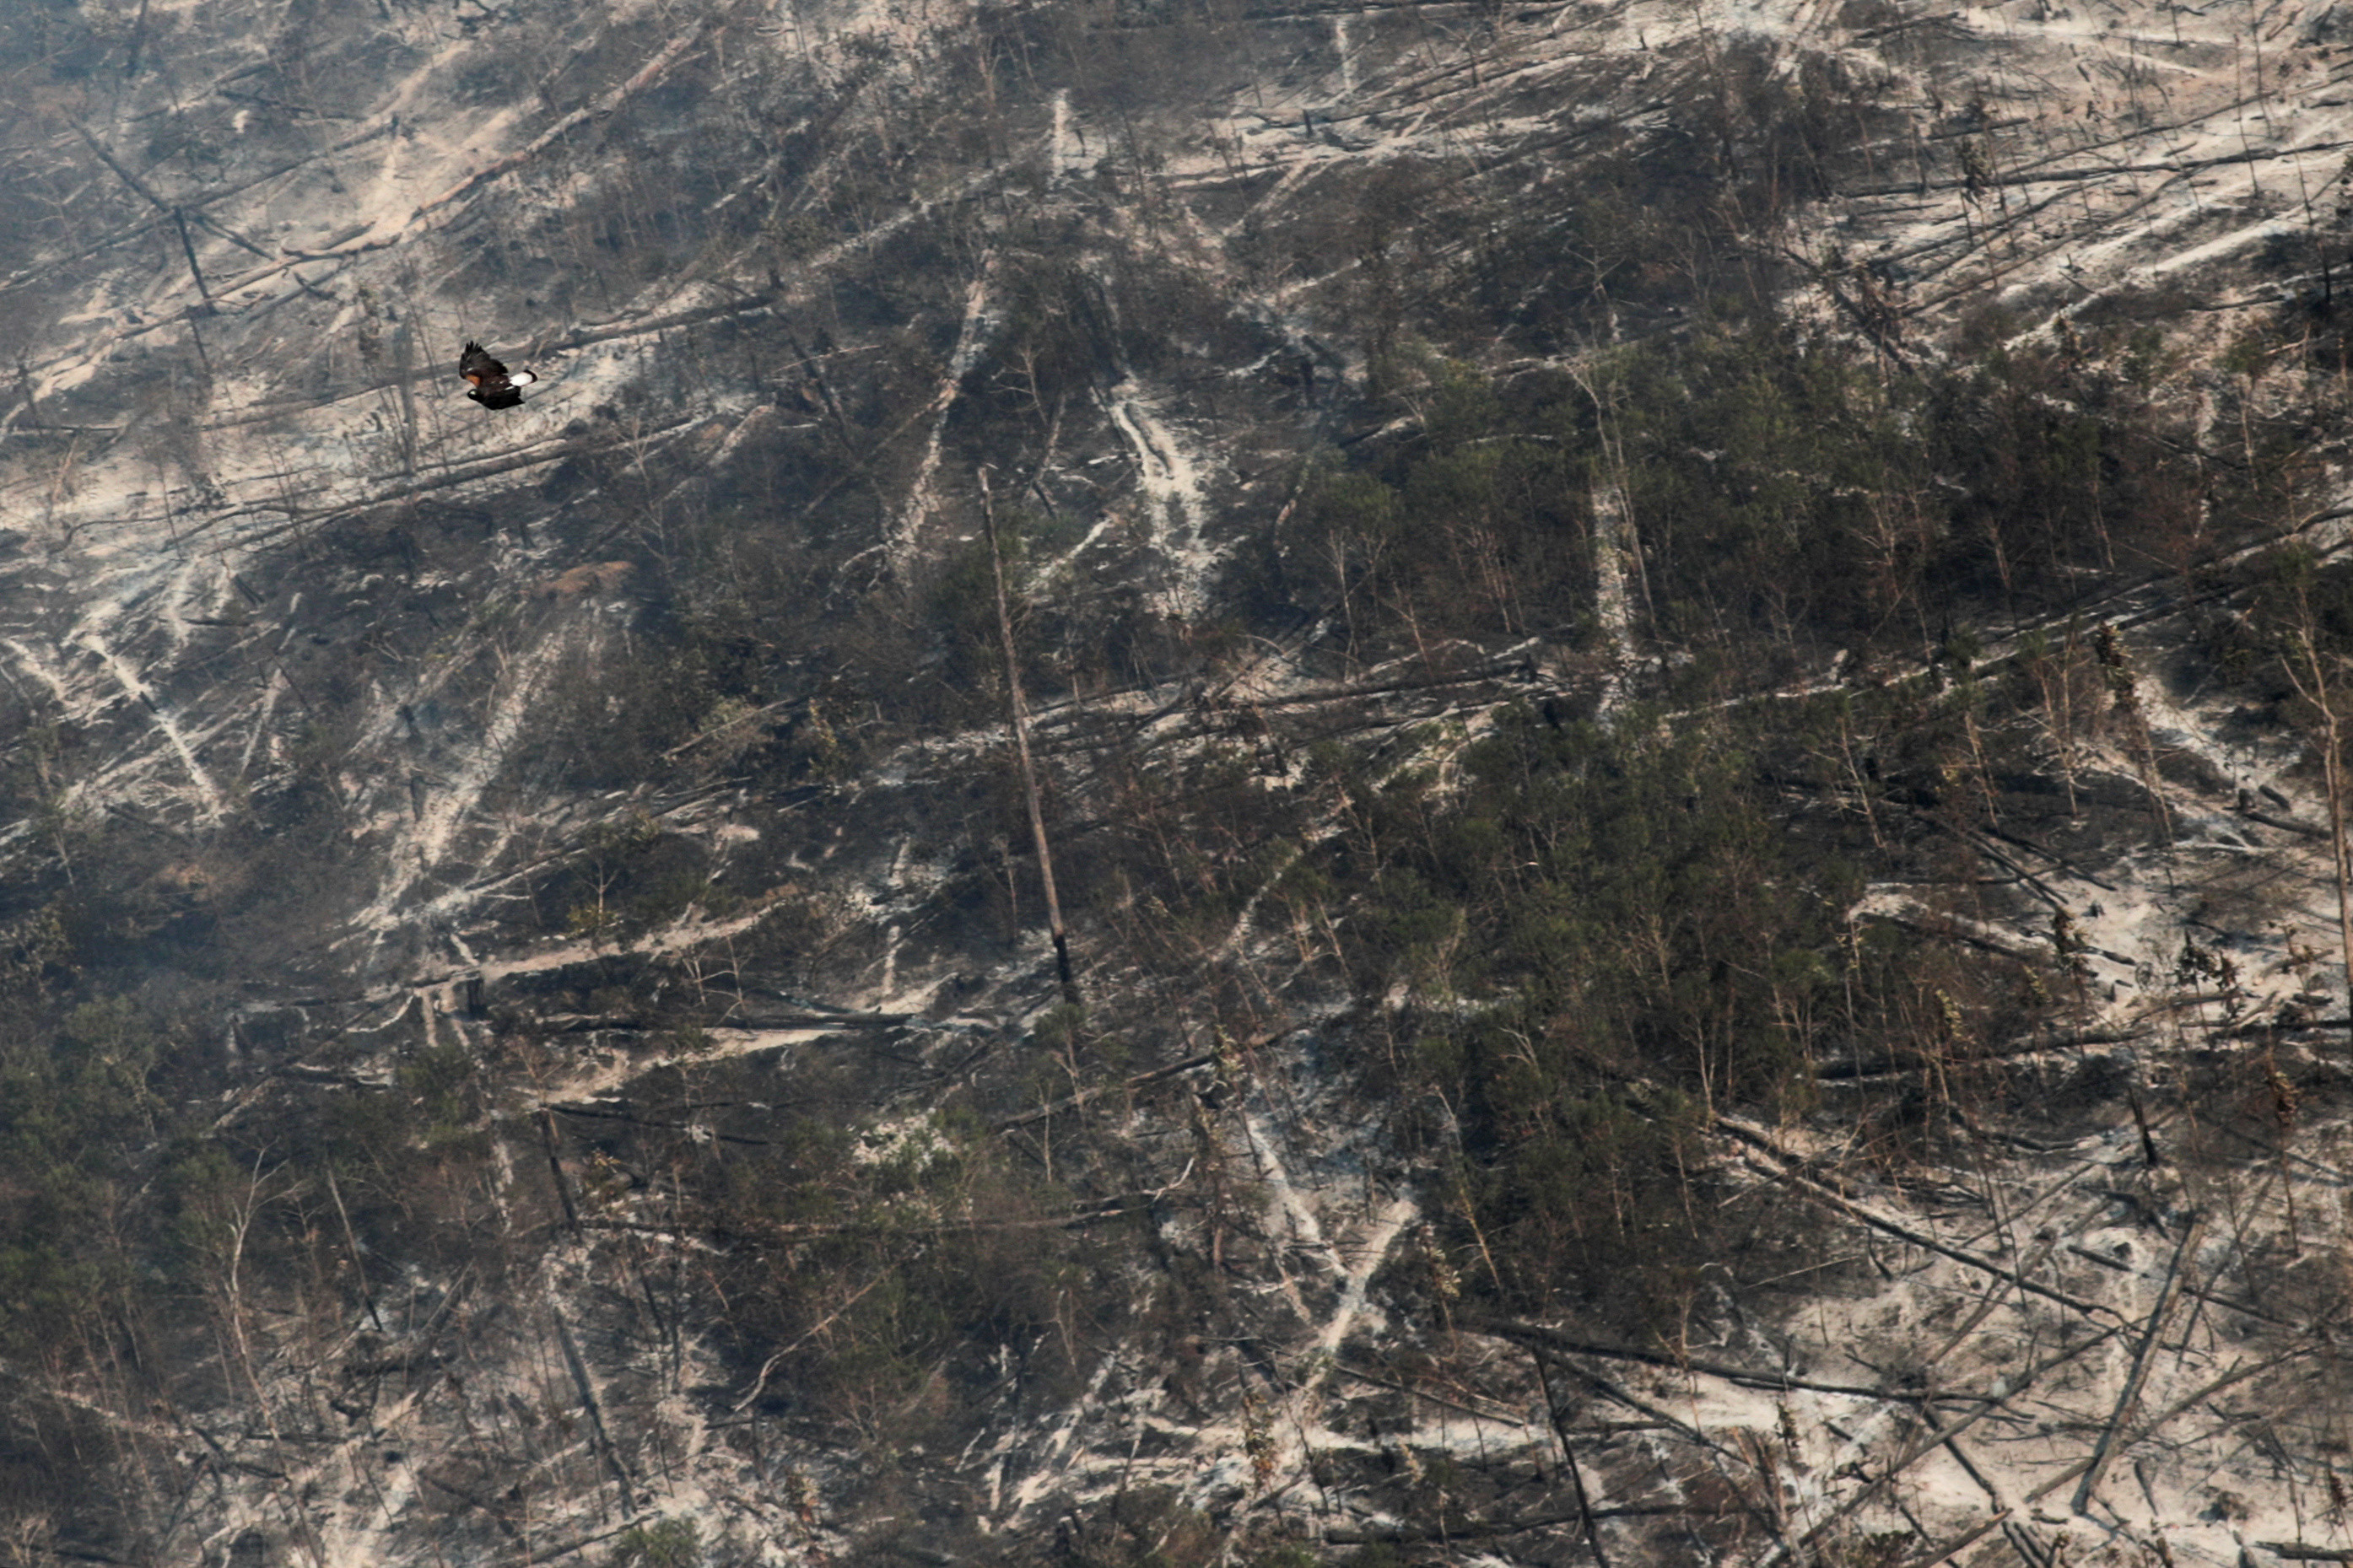 """A hawk flies over a tract of burnt Amazon jungle near Porto Velho, Rondonia State, Brazil August 14, 2020. In the dry season ranchers and land speculators set fires to clear deforested woodland for pasture. Blazes can rage out of control, fueled by the swirling wind and dry foliage. Wildlife flee from the smoke and flames. REUTERS/Ueslei Marcelino   SEARCH """"BRAZIL ANIMALS"""" FOR THIS STORY. SEARCH """"WIDER IMAGE"""" FOR ALL STORIES  TPX IMAGES OF THE DAY - RC2OTI97PVJA"""